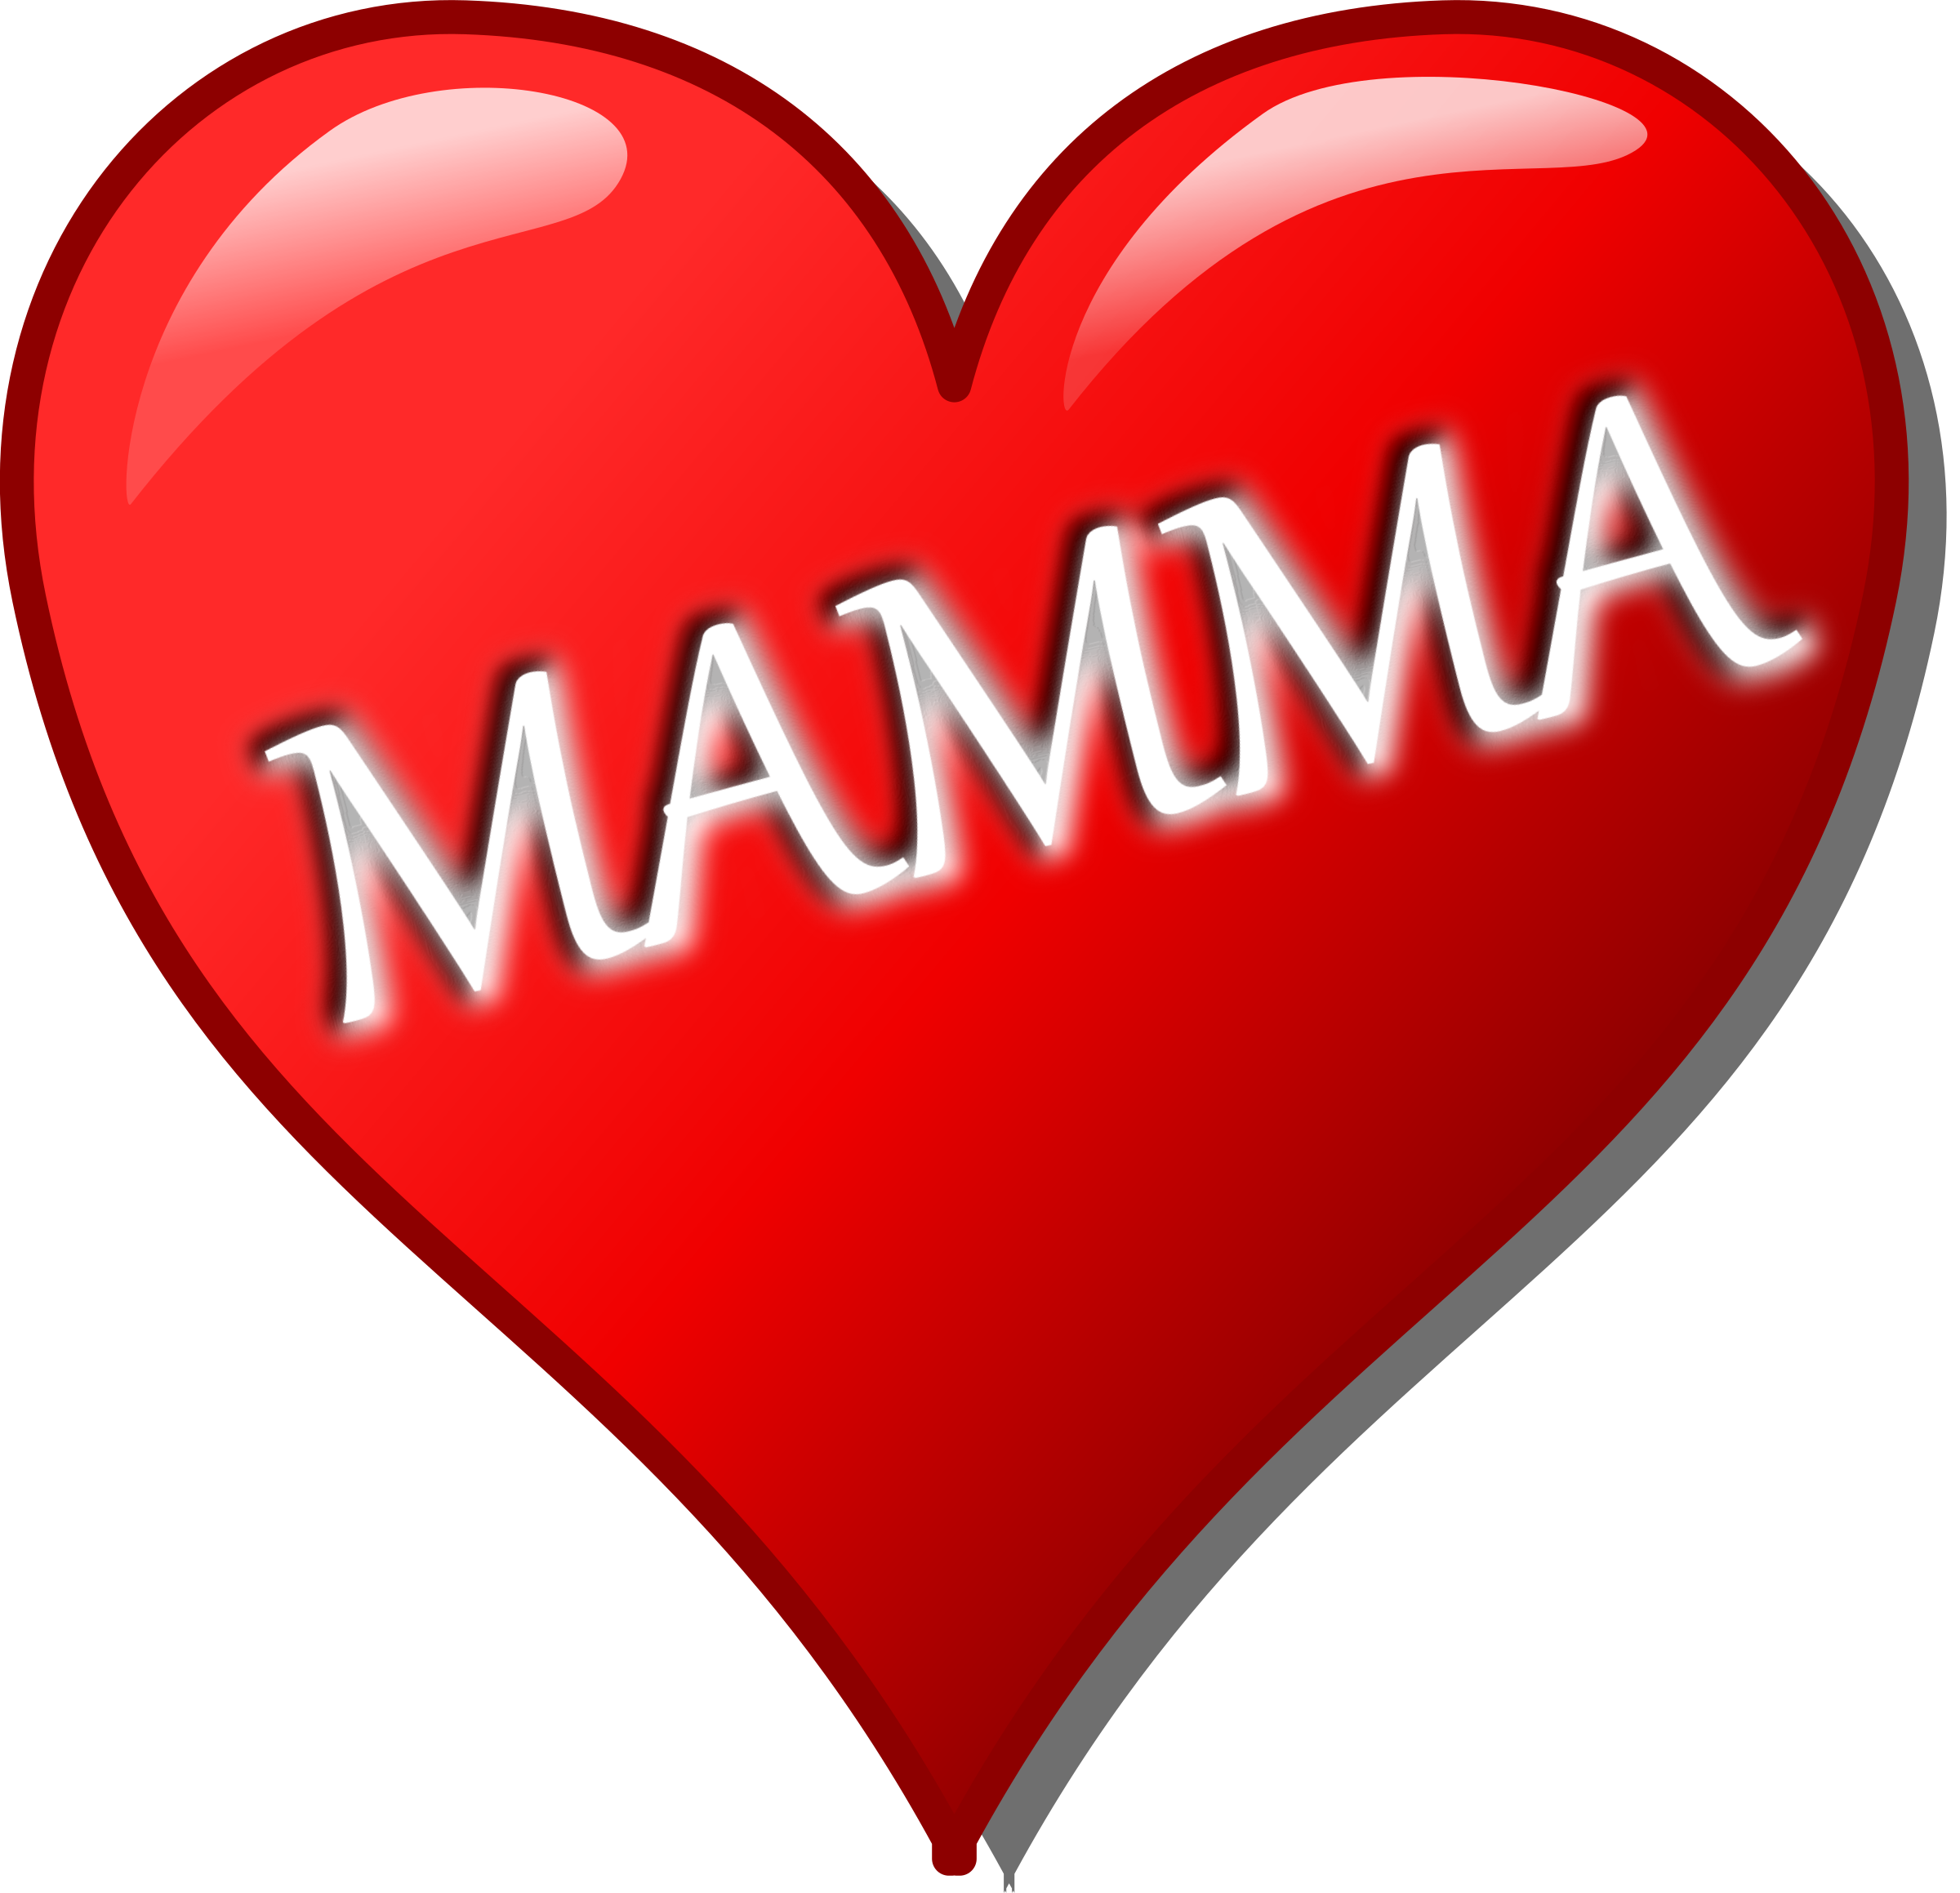 clipart cuore per la festa della mamma. Black Bedroom Furniture Sets. Home Design Ideas